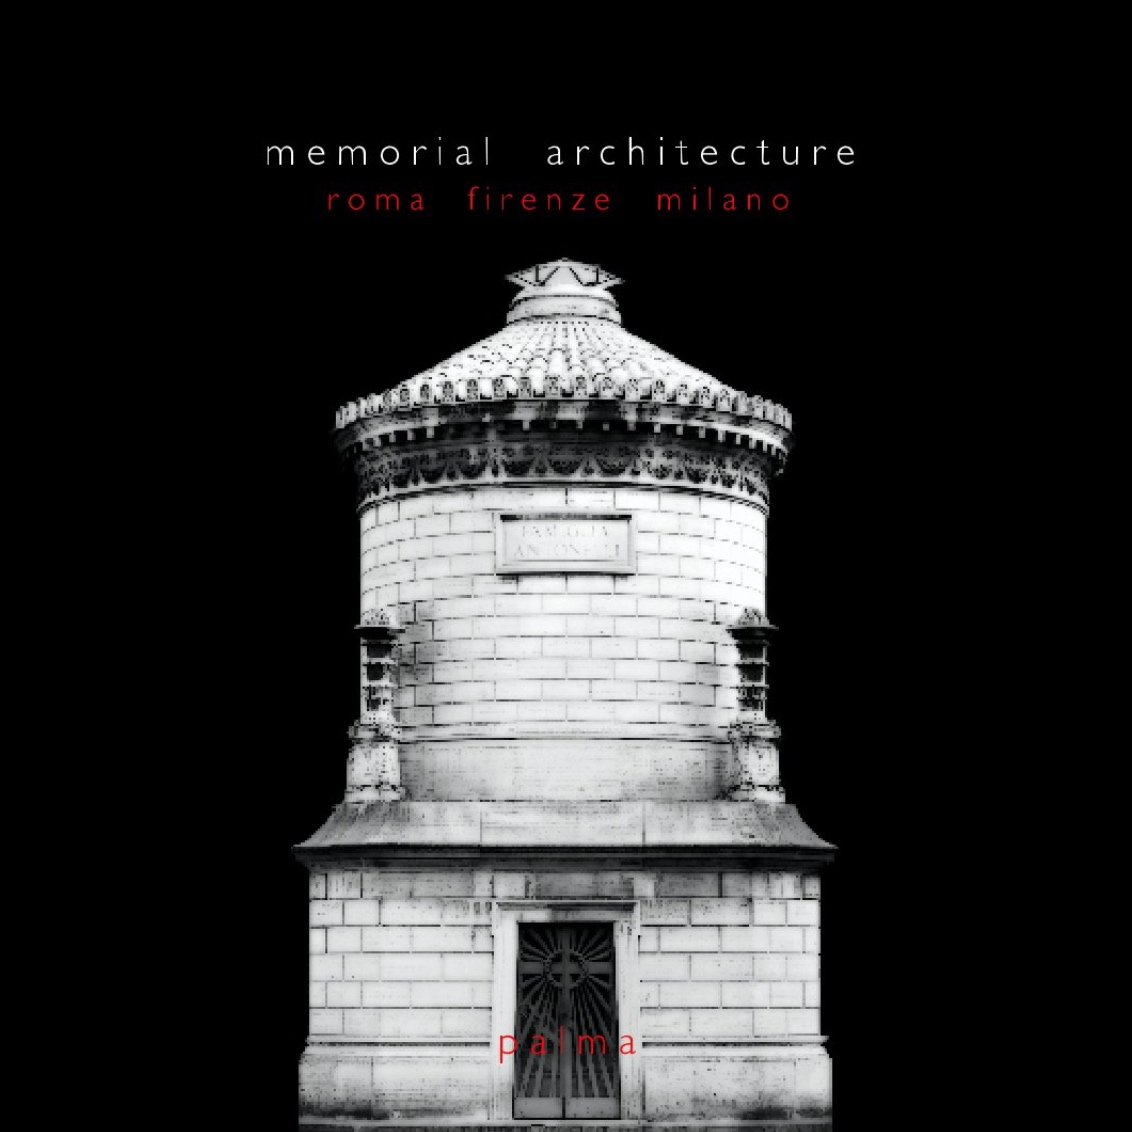 "memorial architecture - italian memorial architecture - roma . firenze . milano7"" x 7"" square formatpreview and purchase at blurb.com"